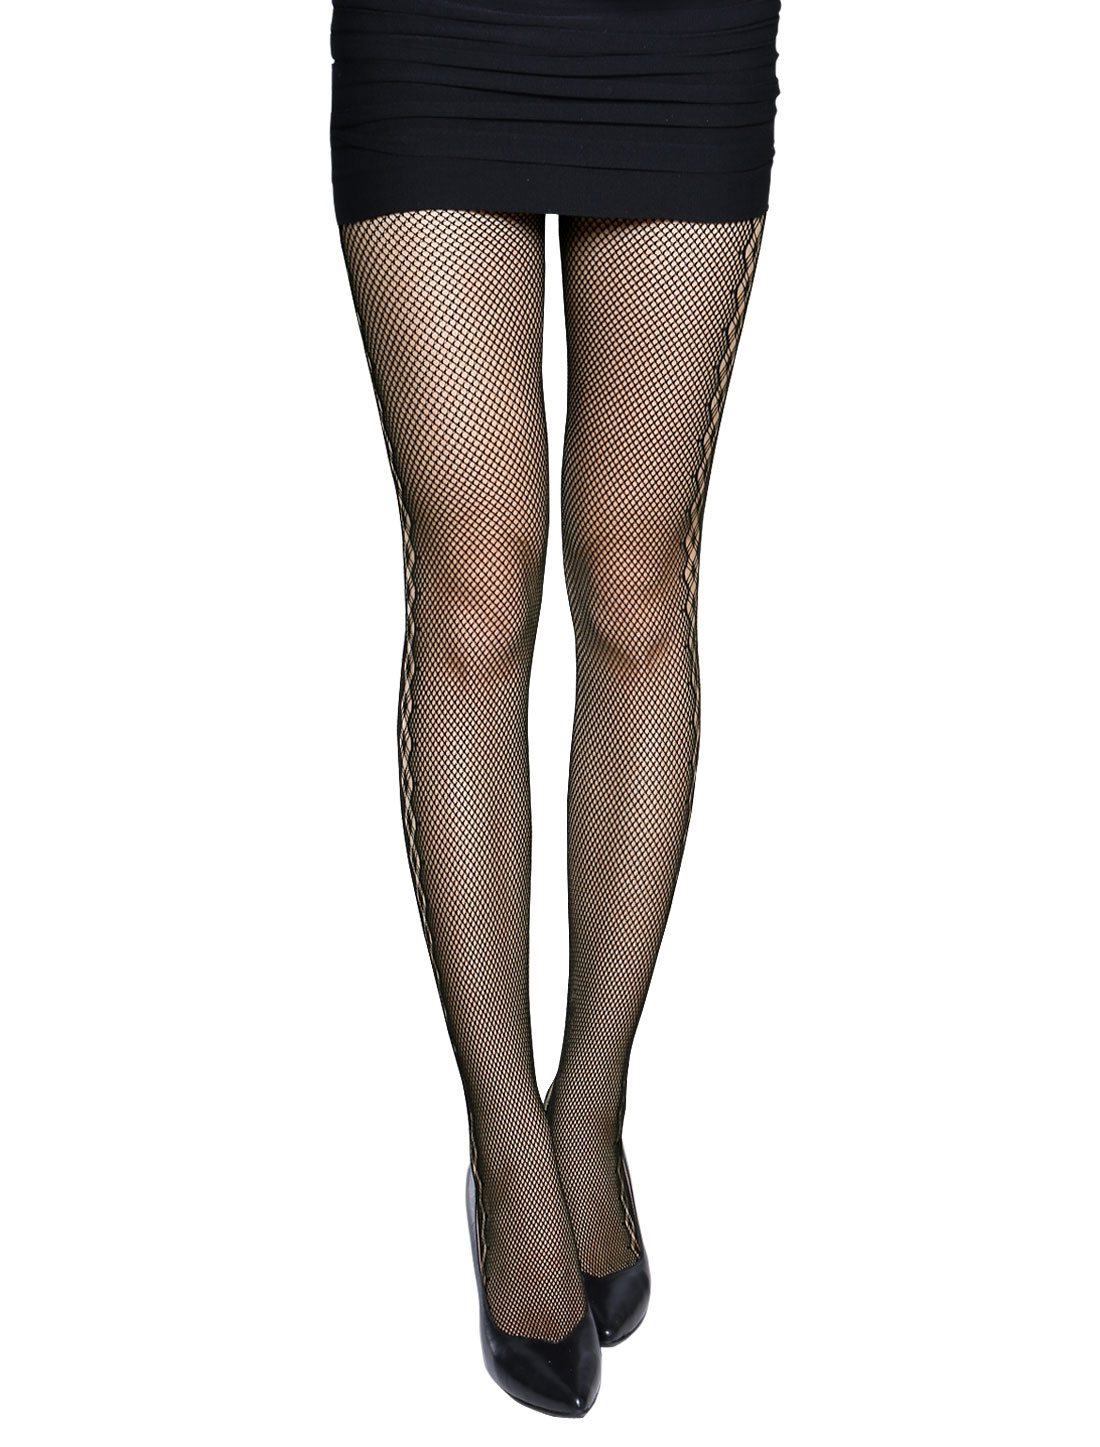 Women Cable Design Sides Sexy Fishnet Pantyhose Black XS